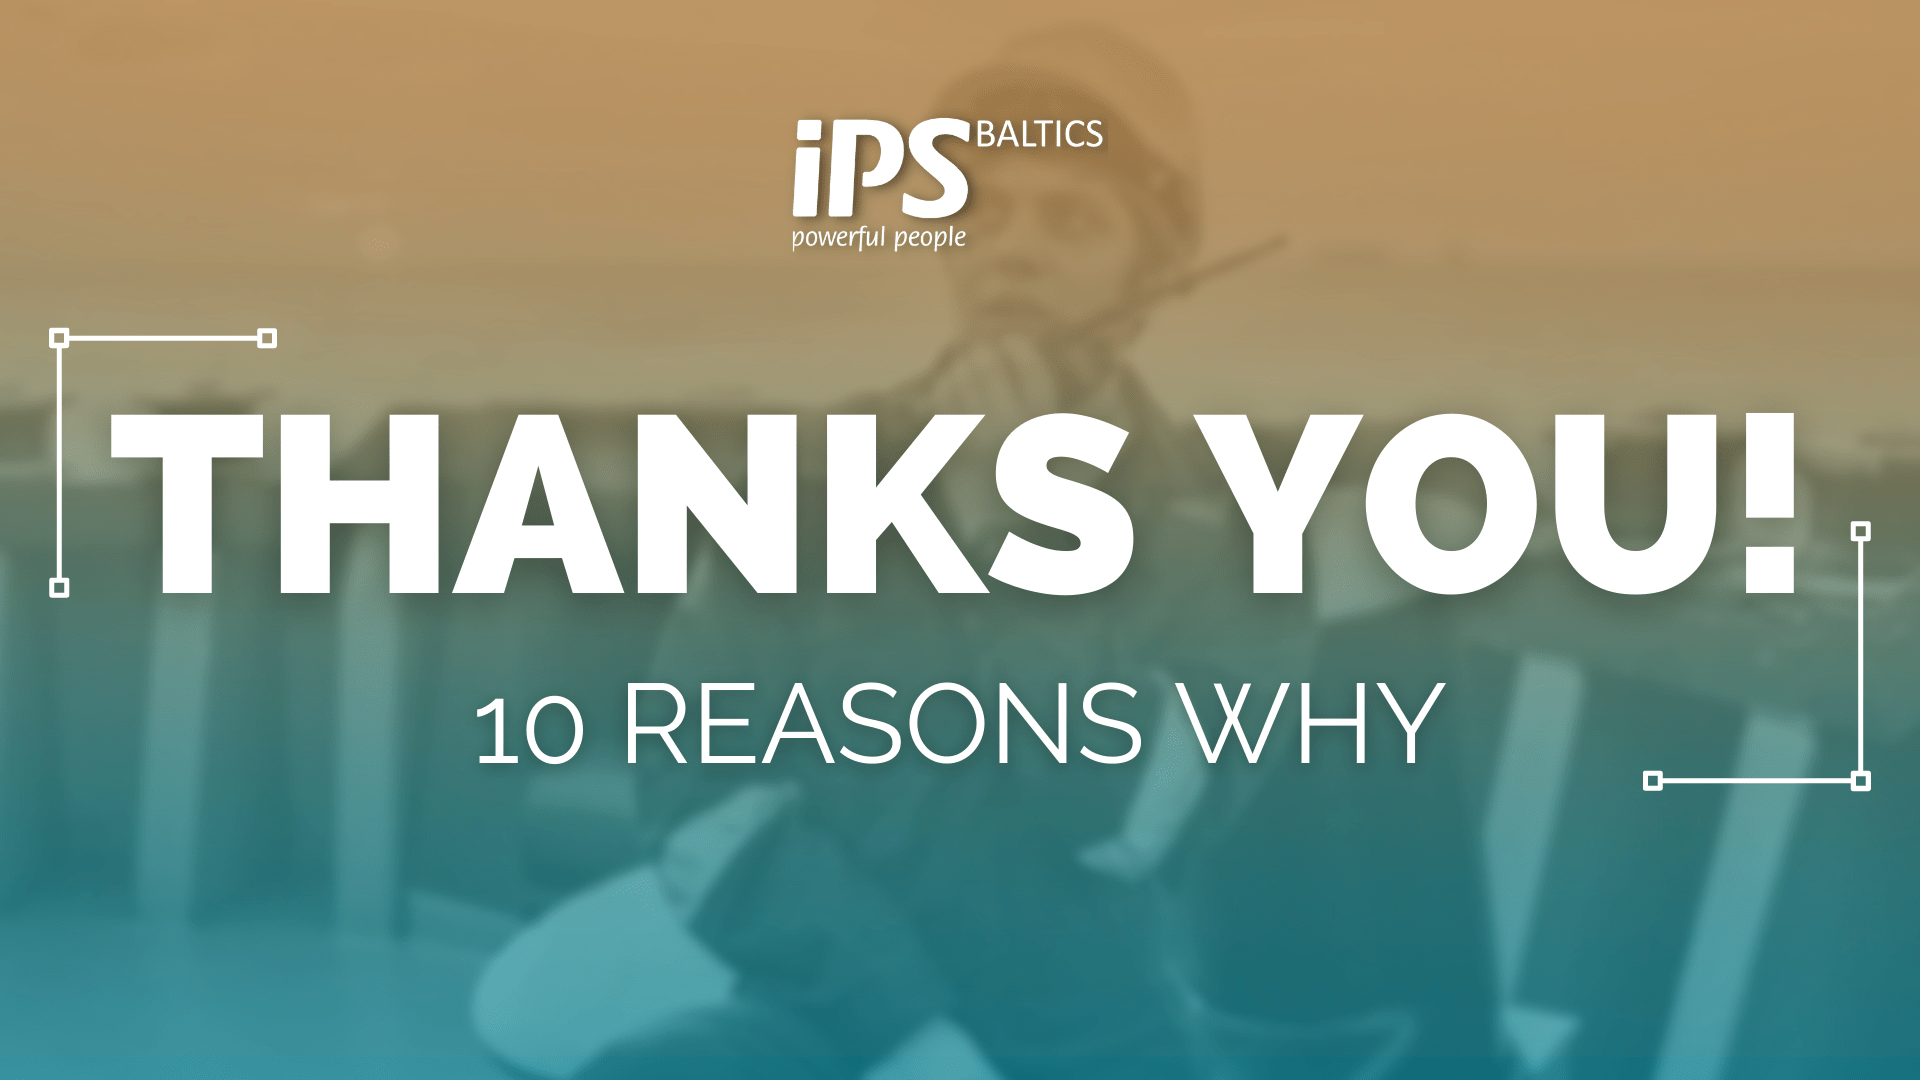 10 REASONS WHY YOU ARE AWESOME!